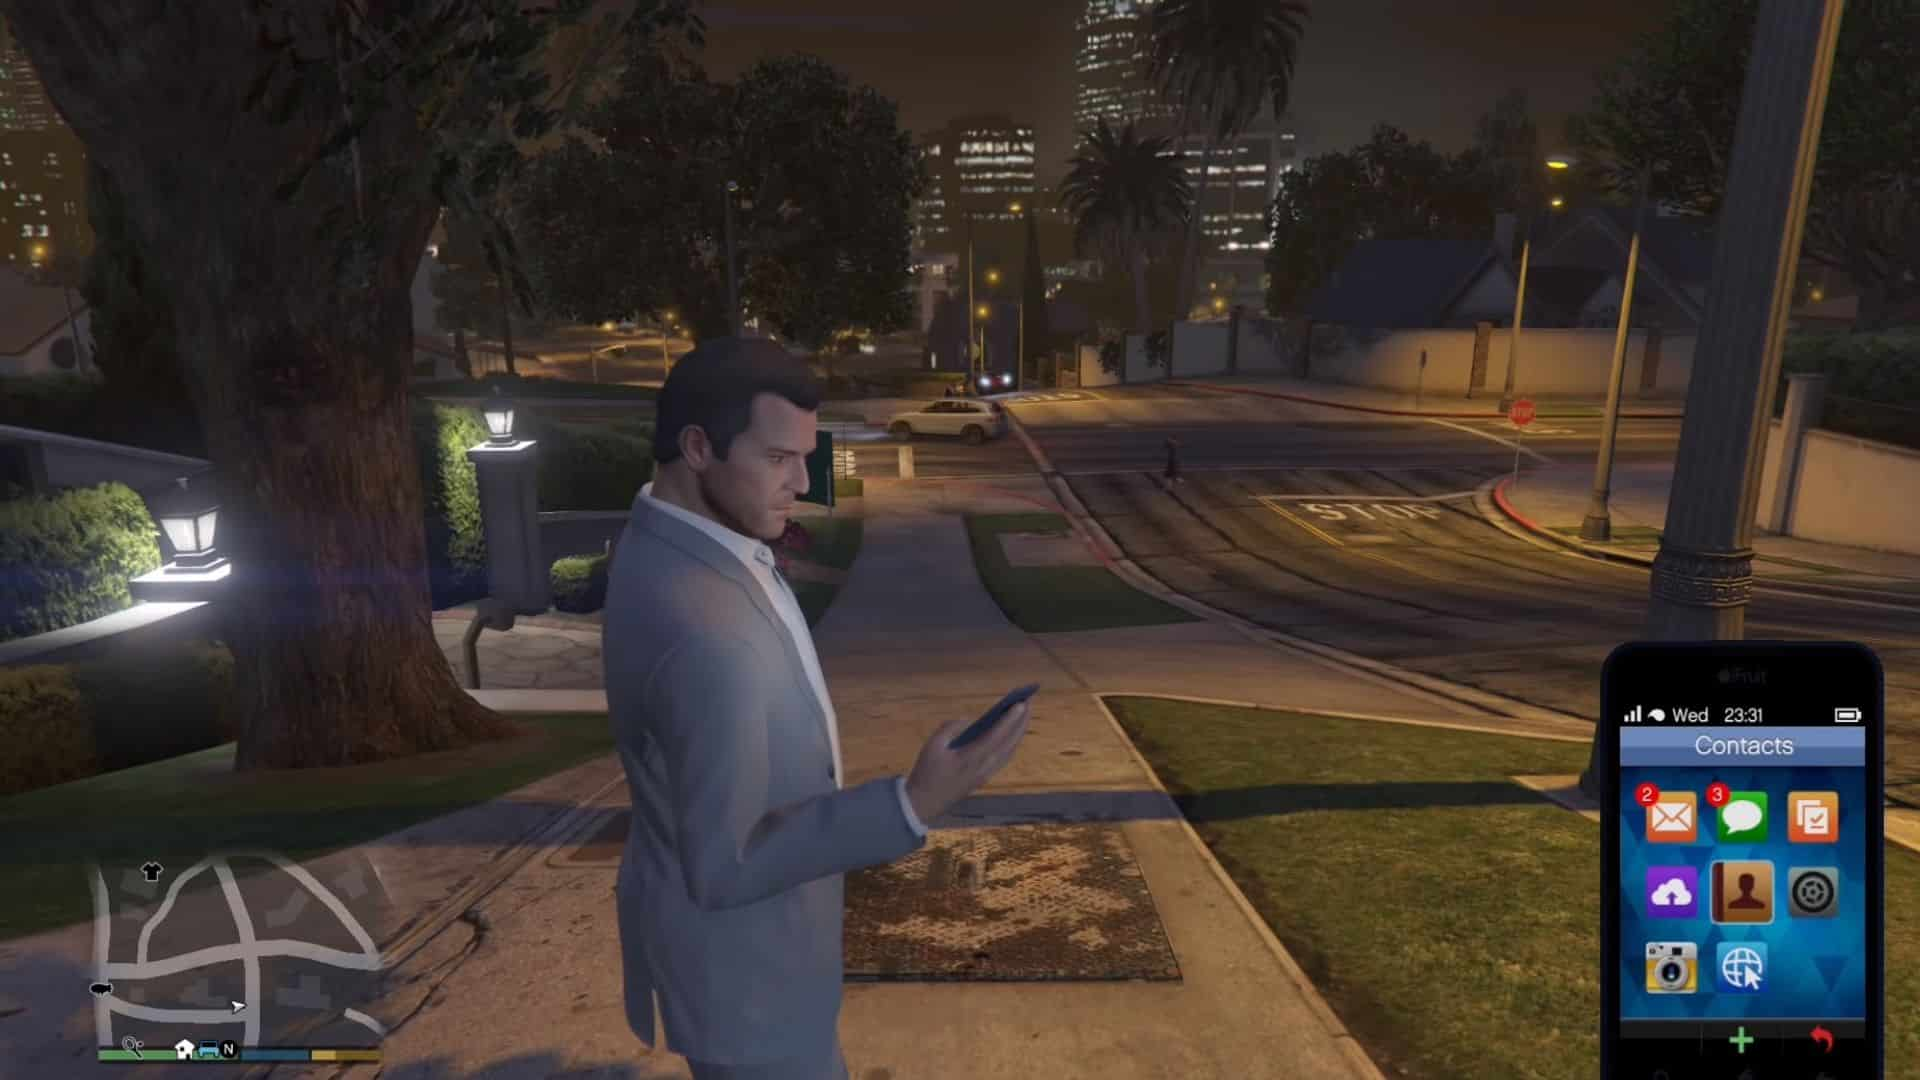 michael on his phone in gta v